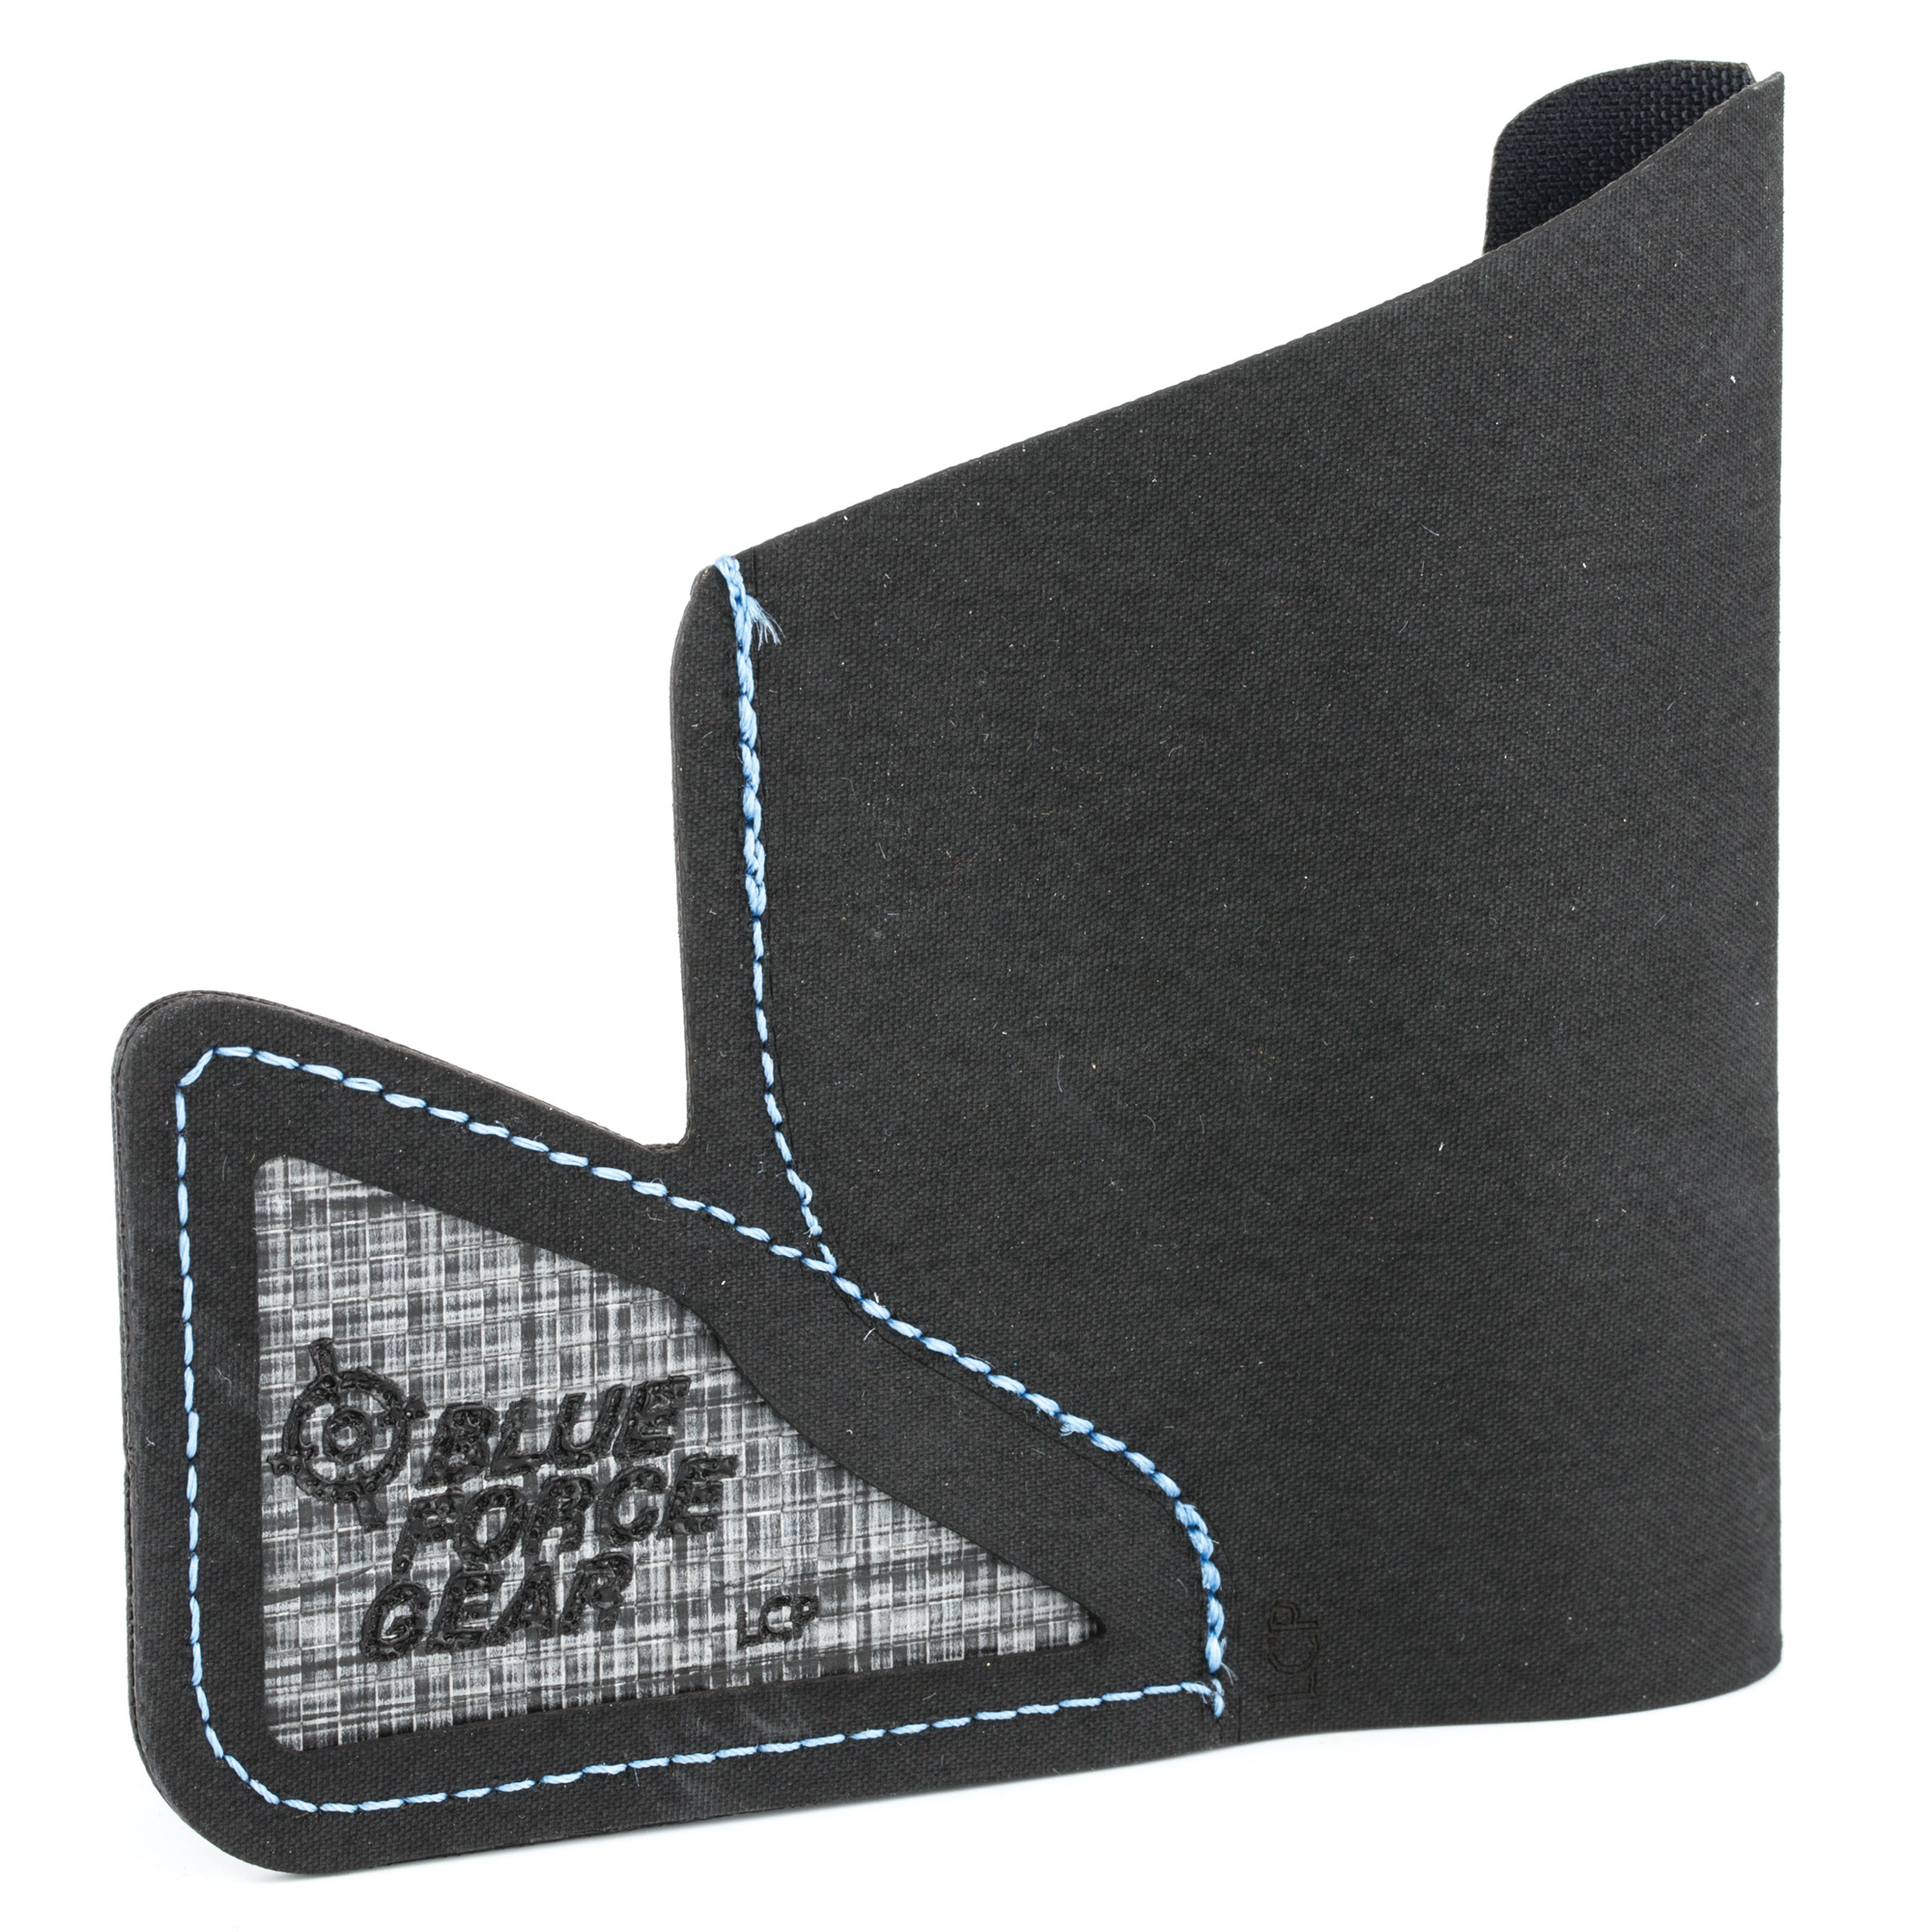 """Blue Force Gear brings the same revolutionary ULTRAcomp material developed for and proven on the battlefield to everyday carry in the form of the ULTRAcomp(R) Pocket Holster - the thinnest pocket holster available today. The ULTRAcomp(R) Pocket Holster removes unnecessary bulk by combining the ultra-thin ULTRAcomp material with model specific designs. ULTRAcomp(R) is a high-performance laminate that far exceeds the military standard air textured nylon in tear and abrasion resistance. Its hydrophobic features allow products to stay dry and light"""" whereas air textured nylon retains water and gets even heavier when wet."""